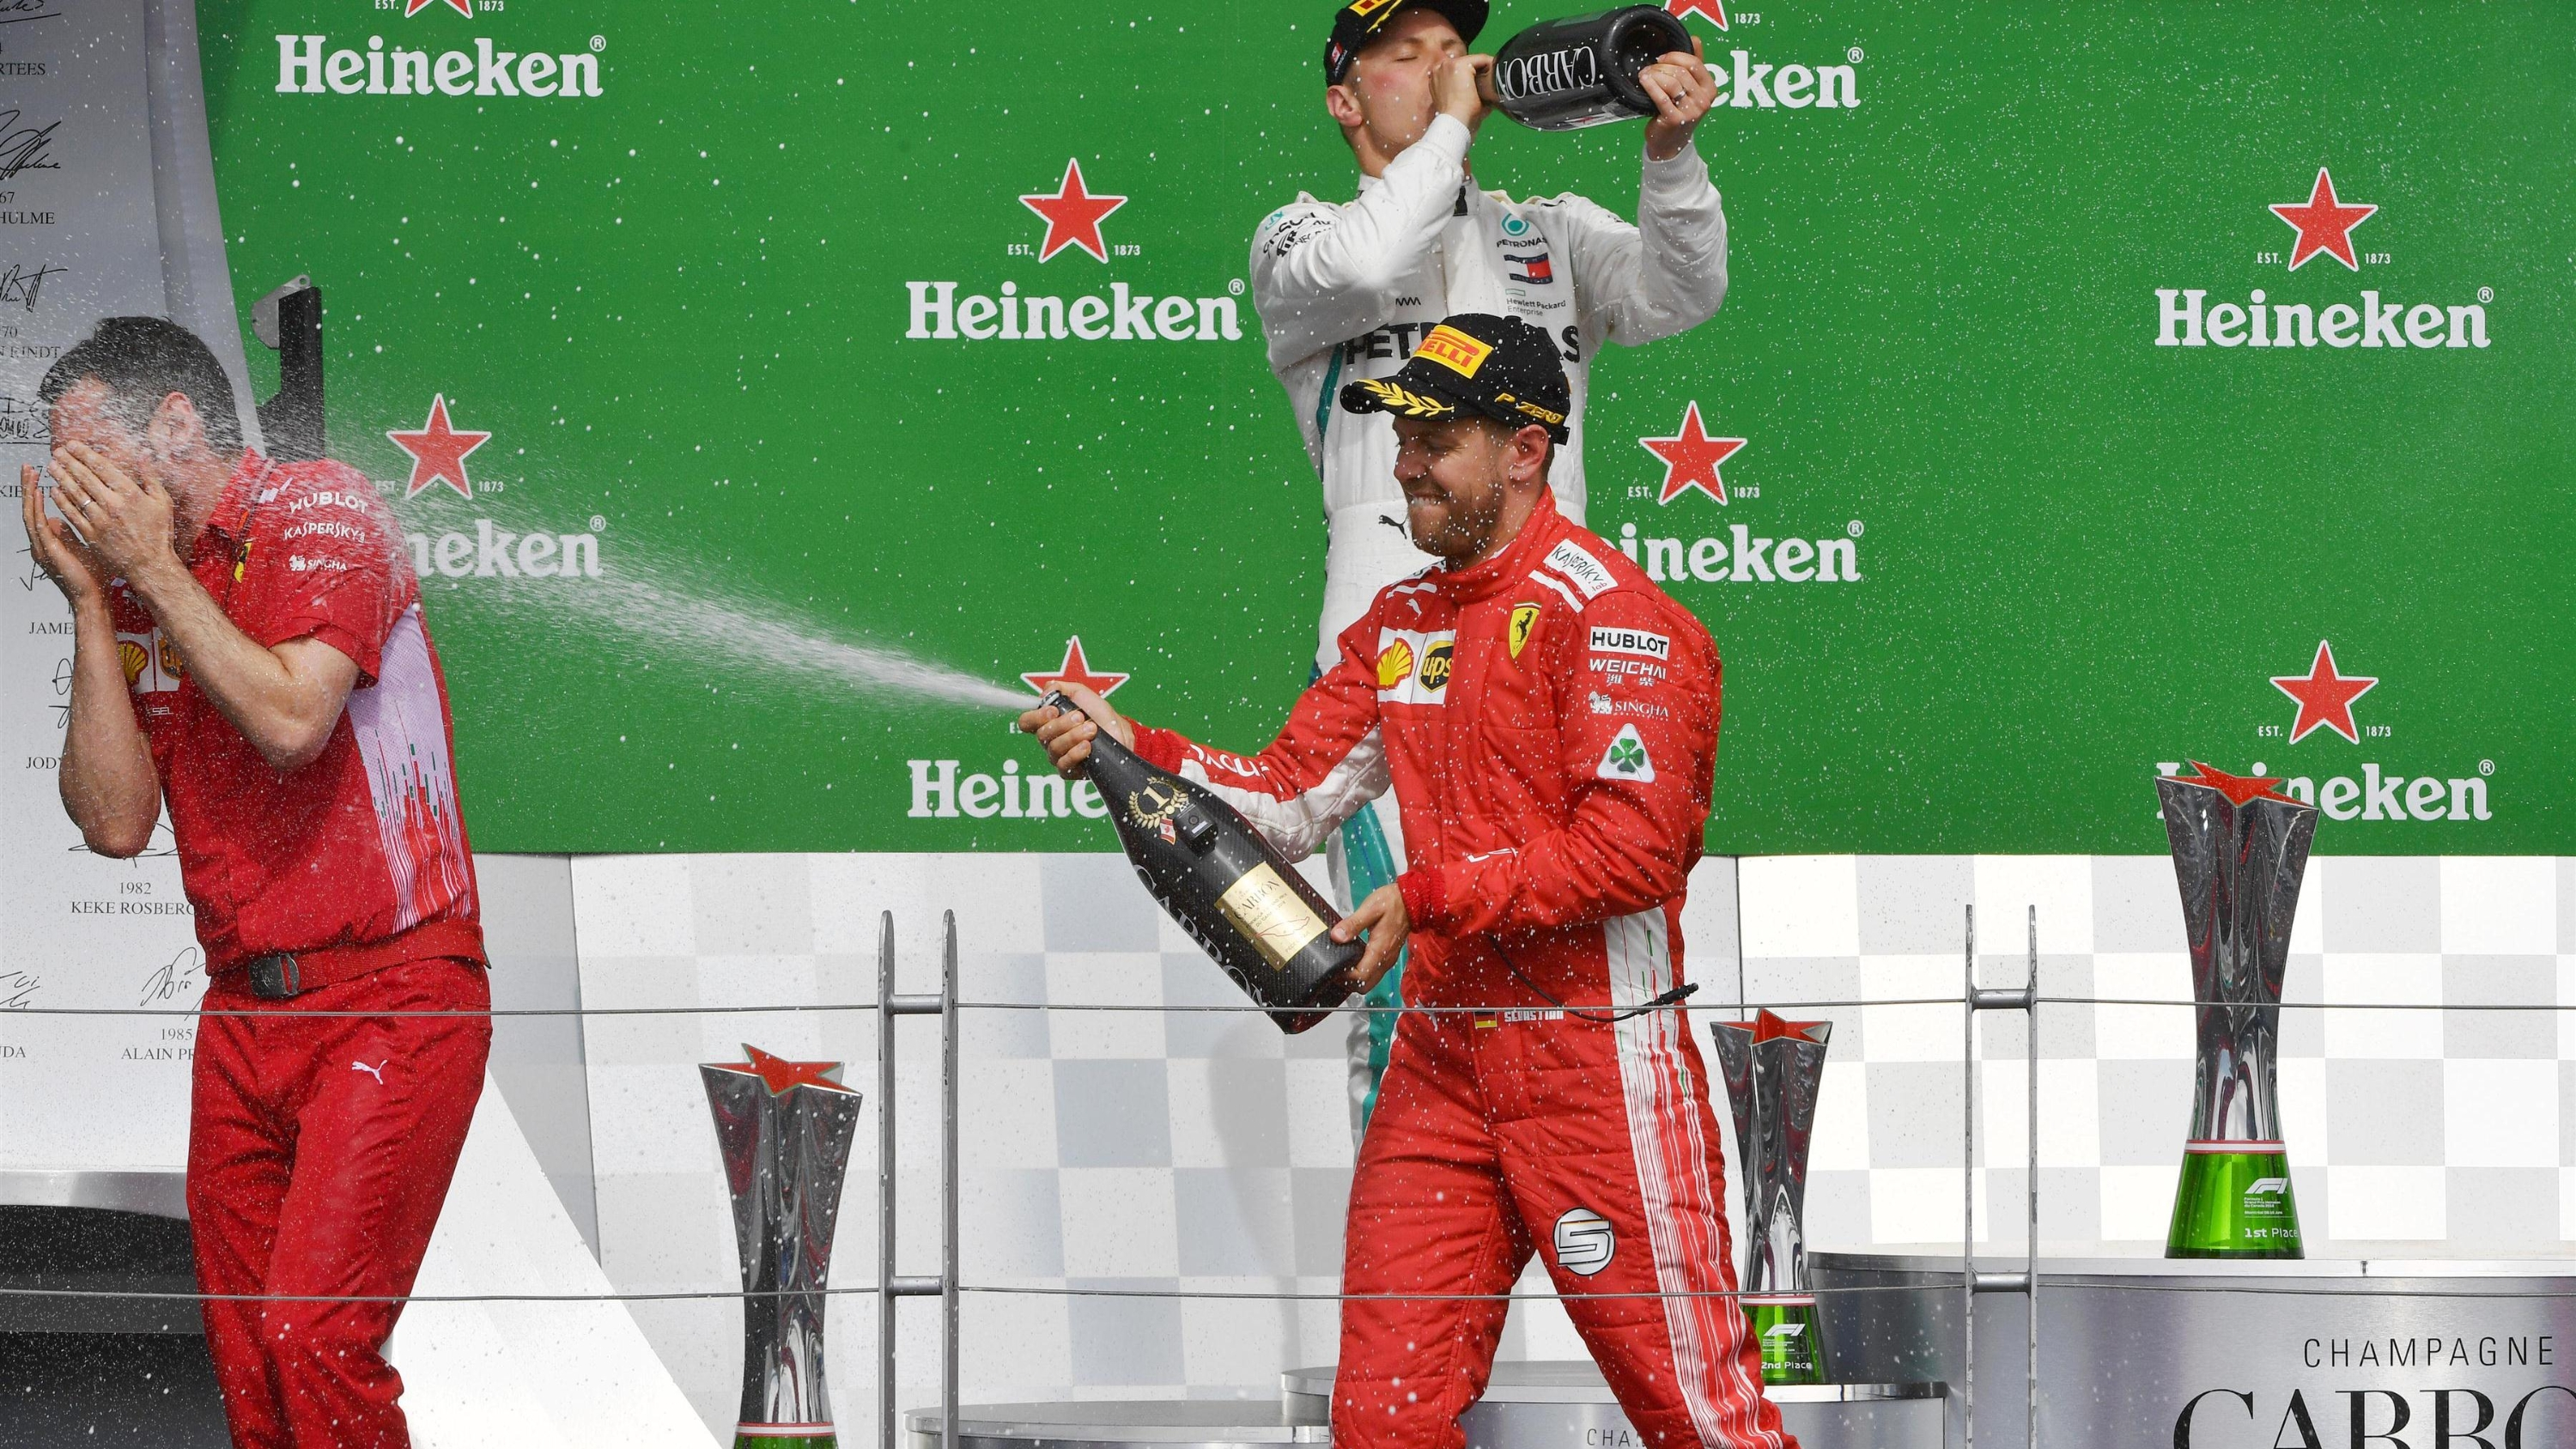 Hamilton wins pole position in French Grand Prix